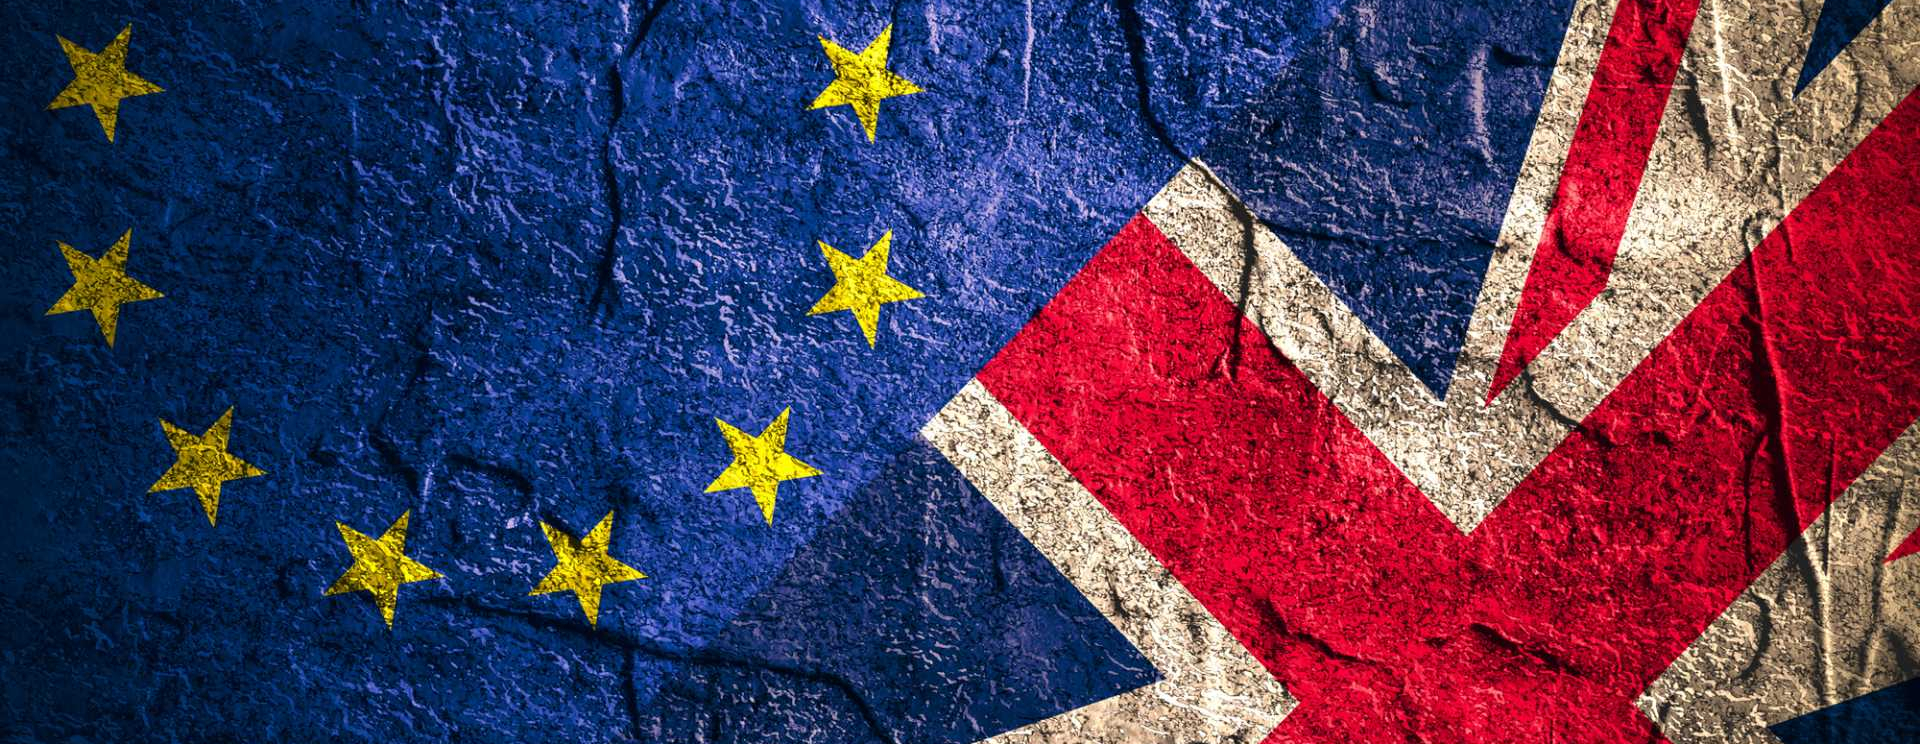 CROP - And four in ten (43%) said Brexit would have a positive impact on their business - image courtesy of Depositphotos.